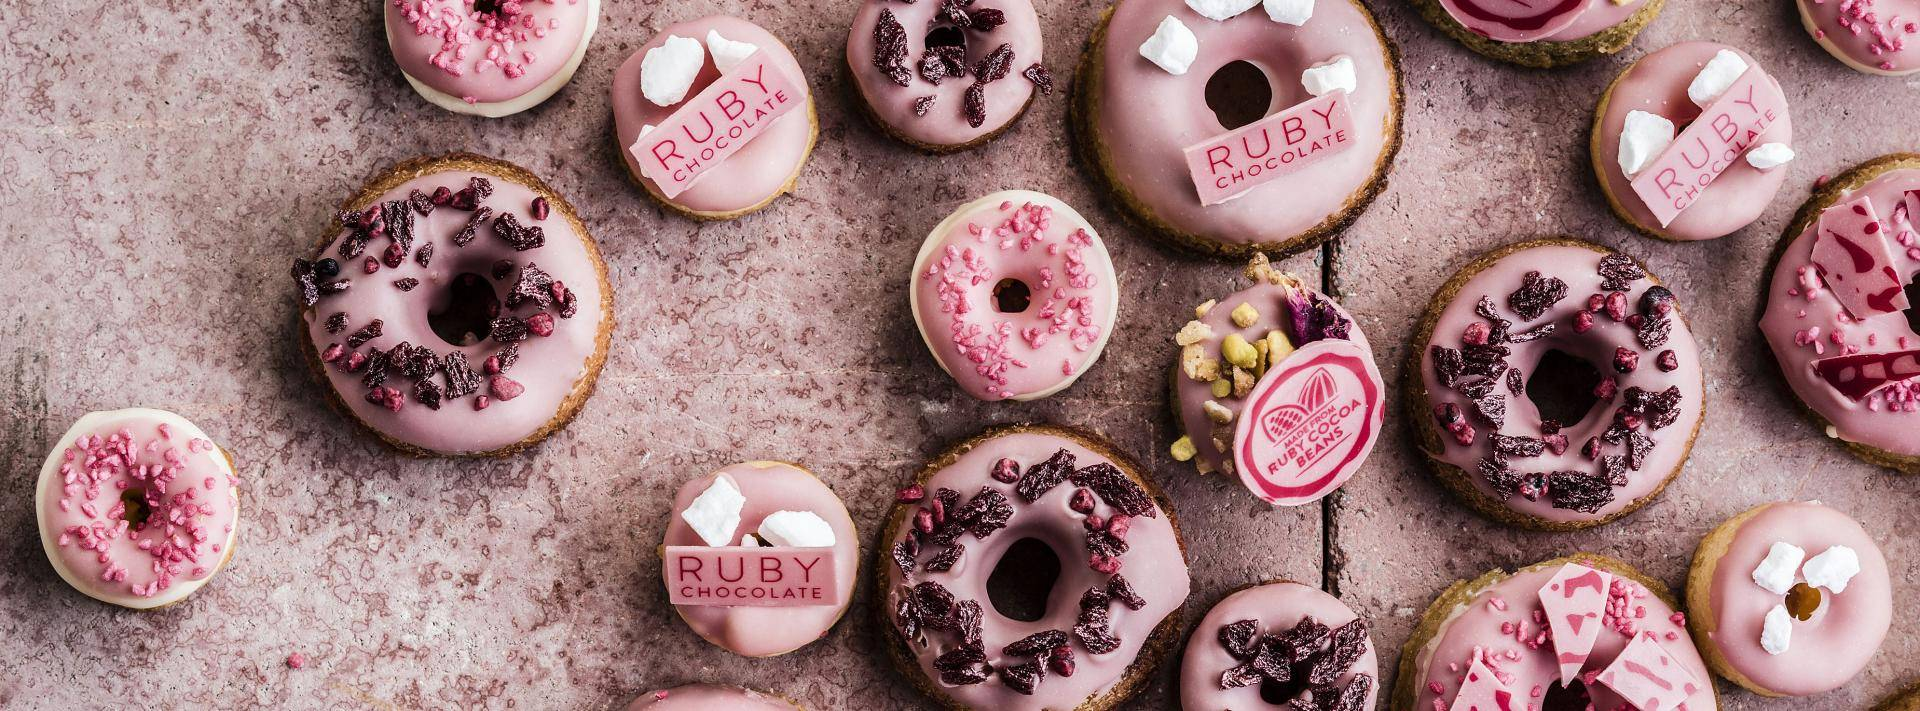 ruby chocolate baked donuts